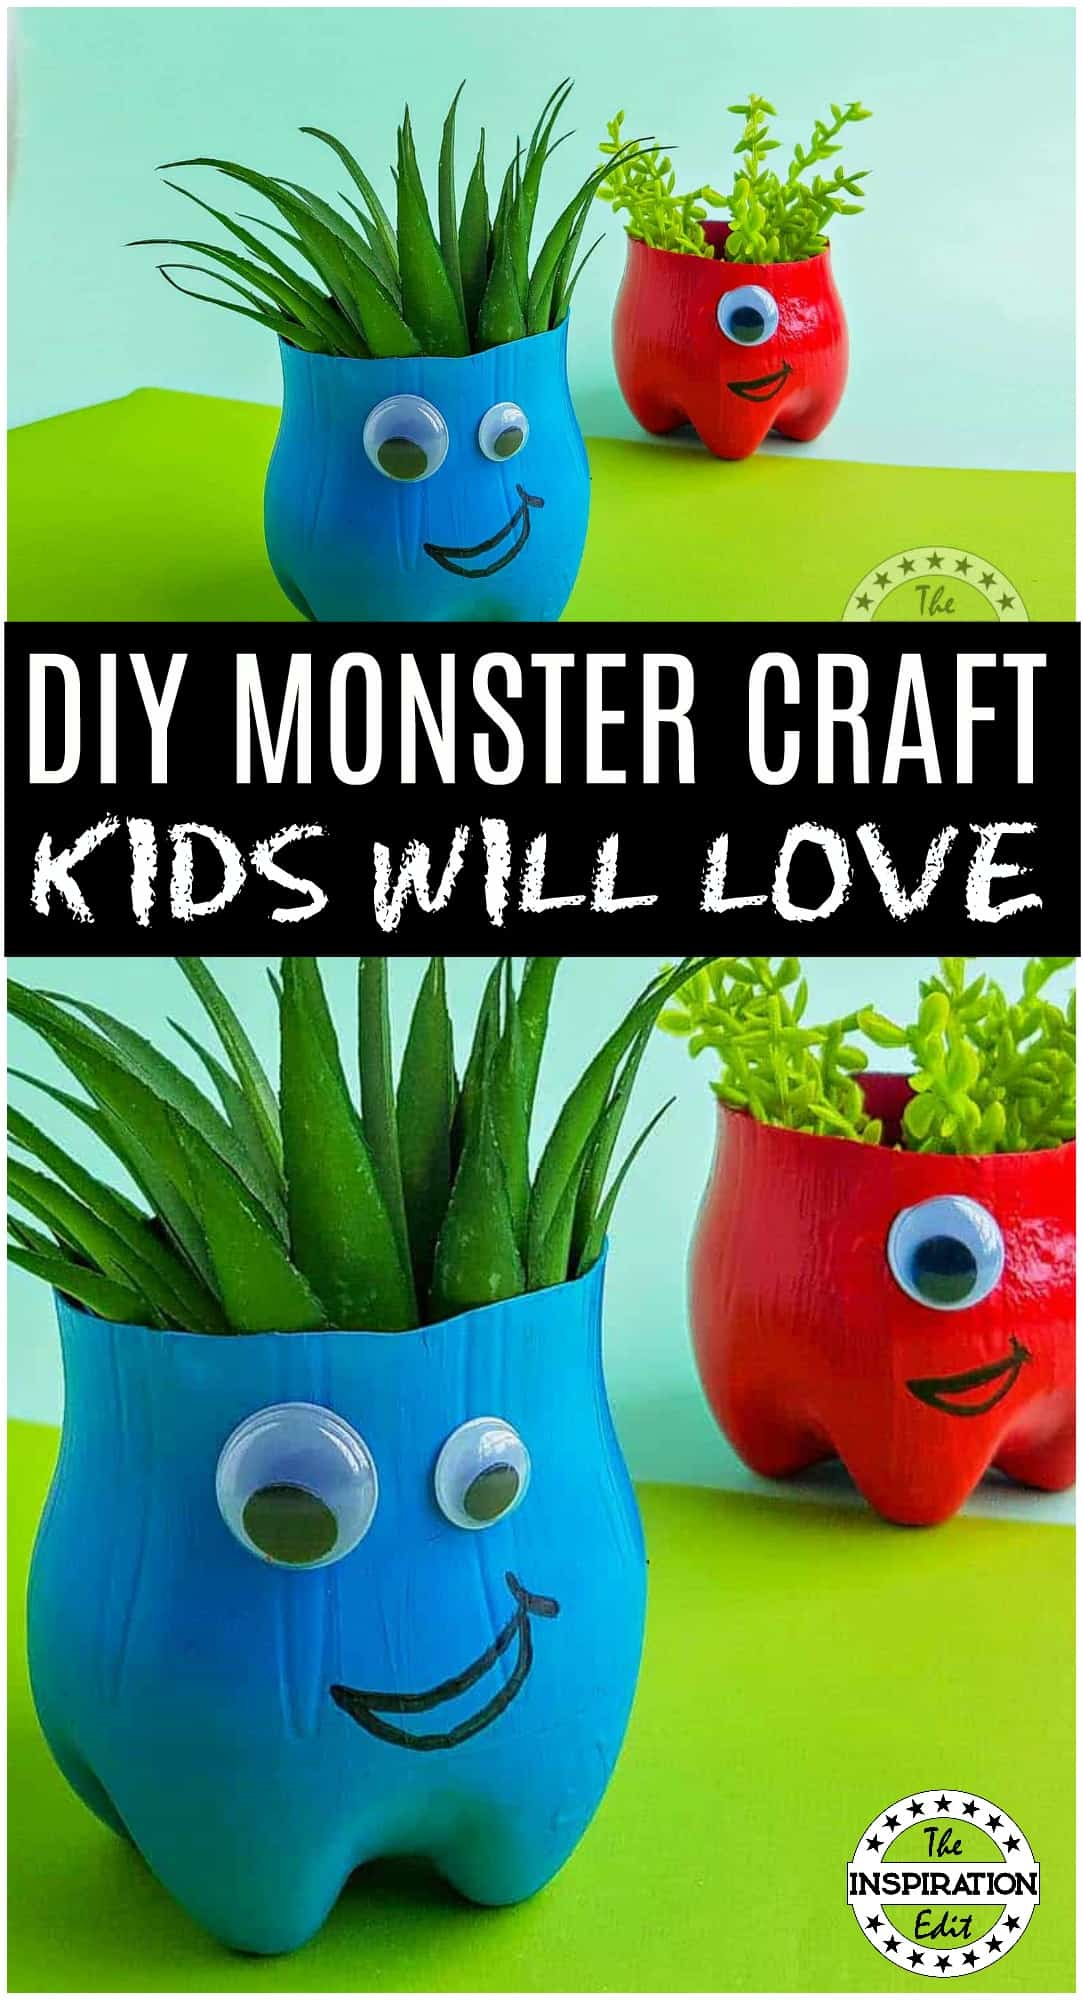 monster craft made from recycled plastic bottle